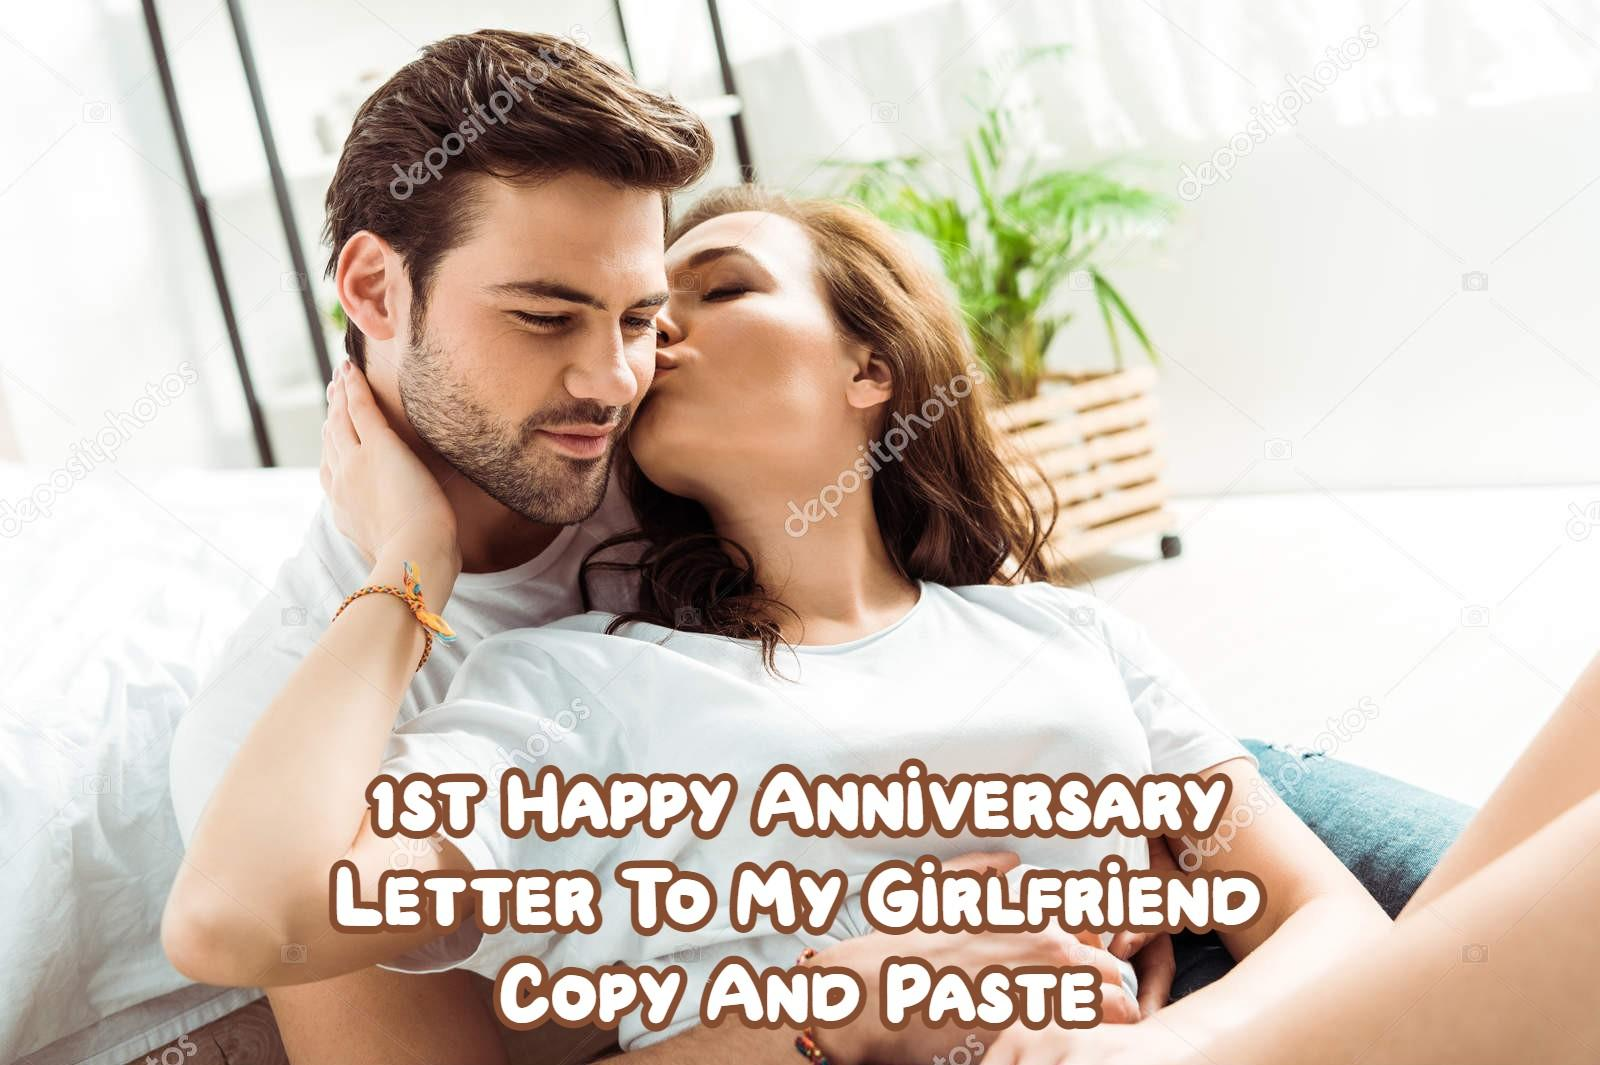 Happy Anniversary Letter To My Girlfriend